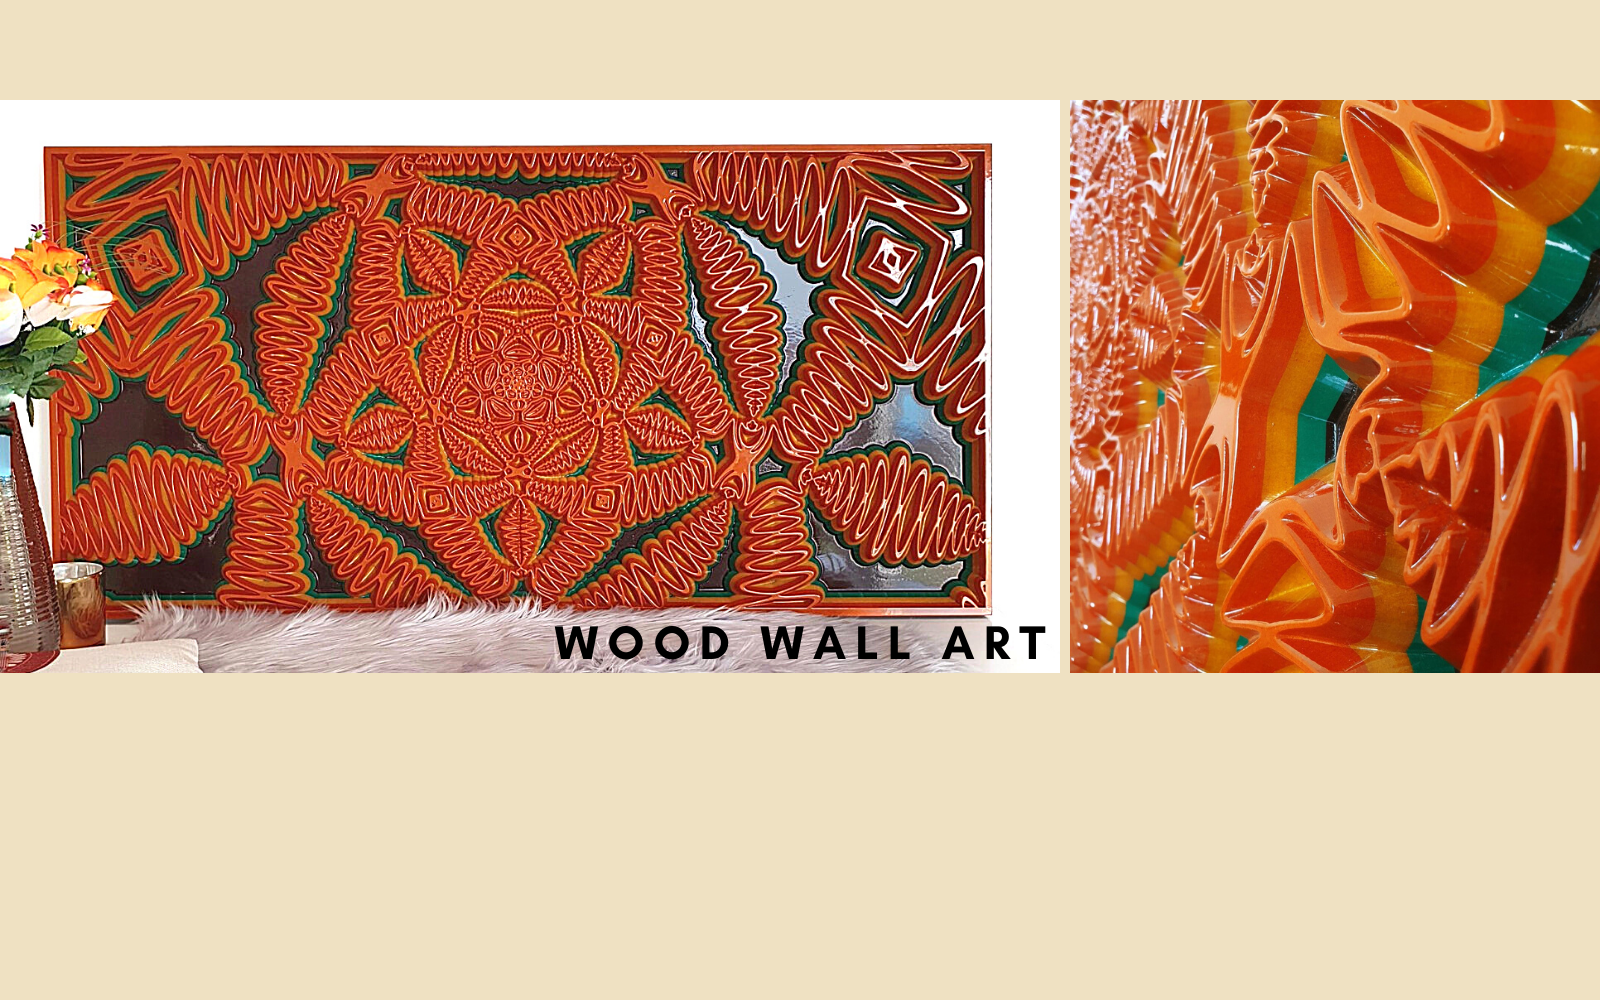 Wood wall art made with Valchromat. Geometric modern design created with a combination of orange, yellow, green and brown. These colours are shown in layers of valchromat.